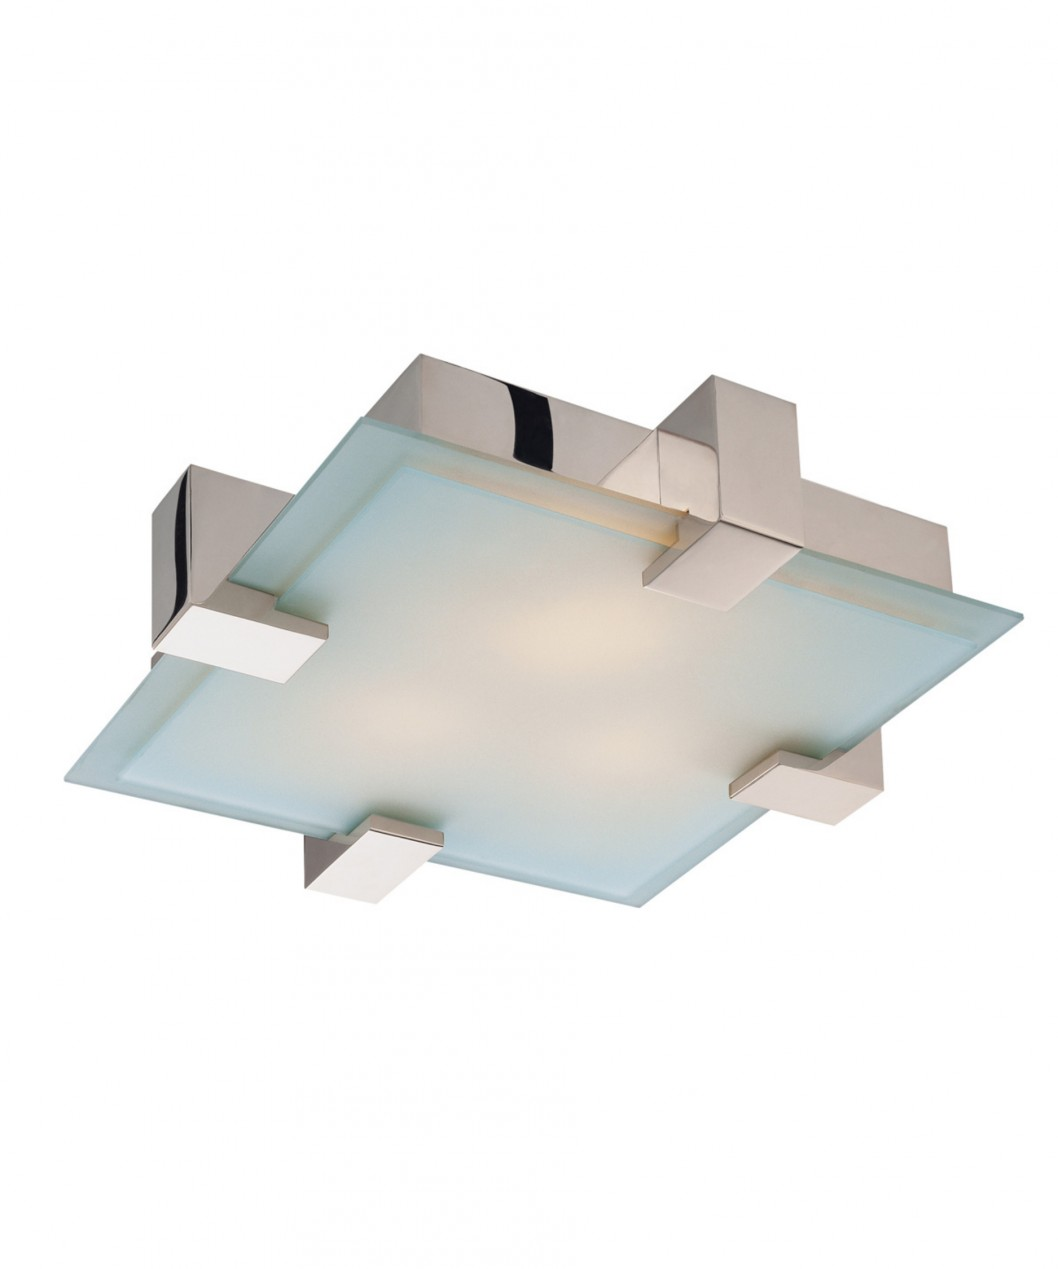 hampton bay led ceiling light photo - 2